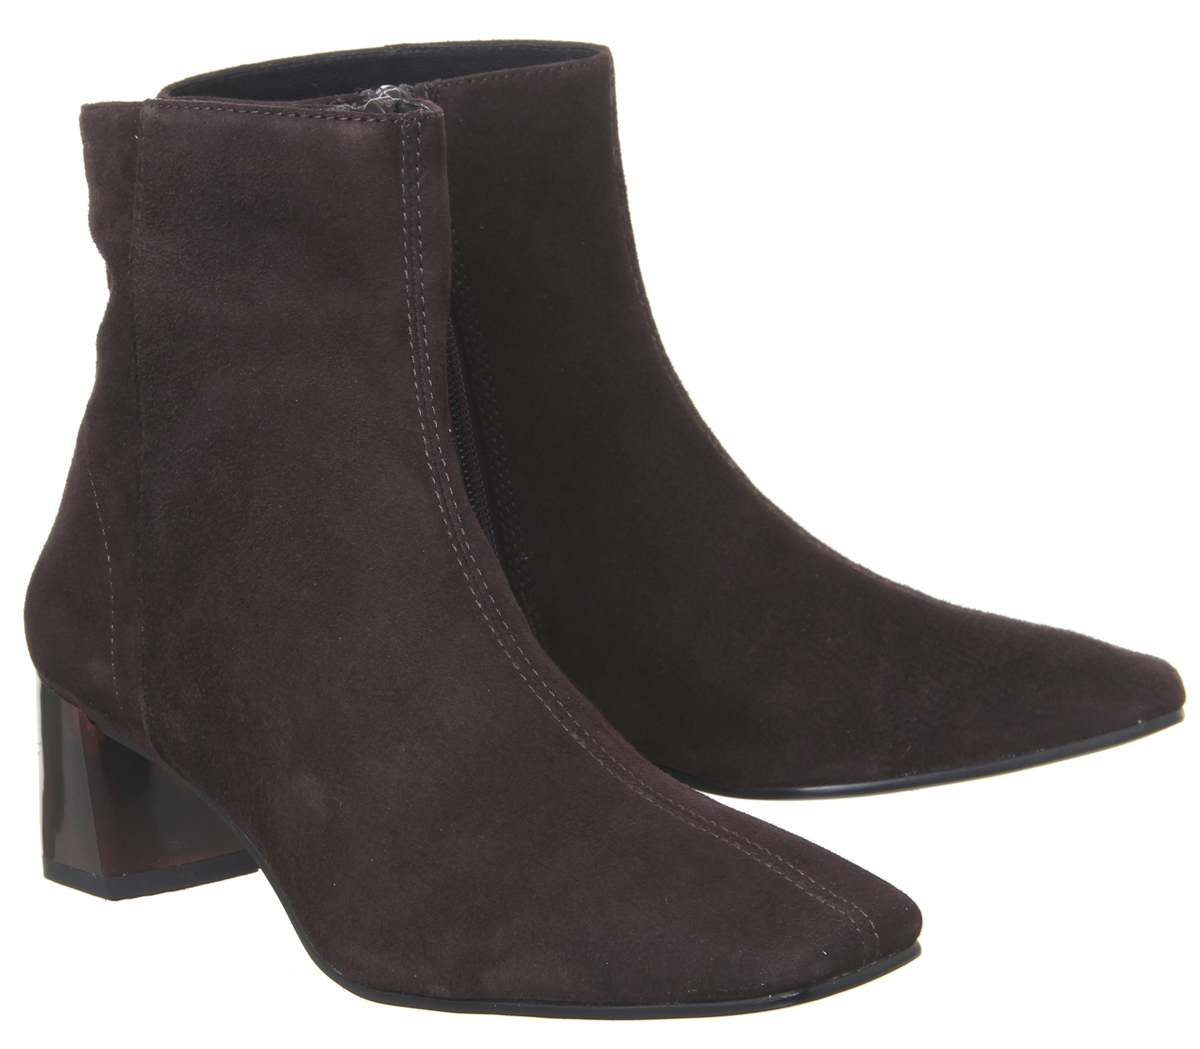 Womens Vagabond Leah Ankle Ankle Ankle Boots Java Boots 4a6487